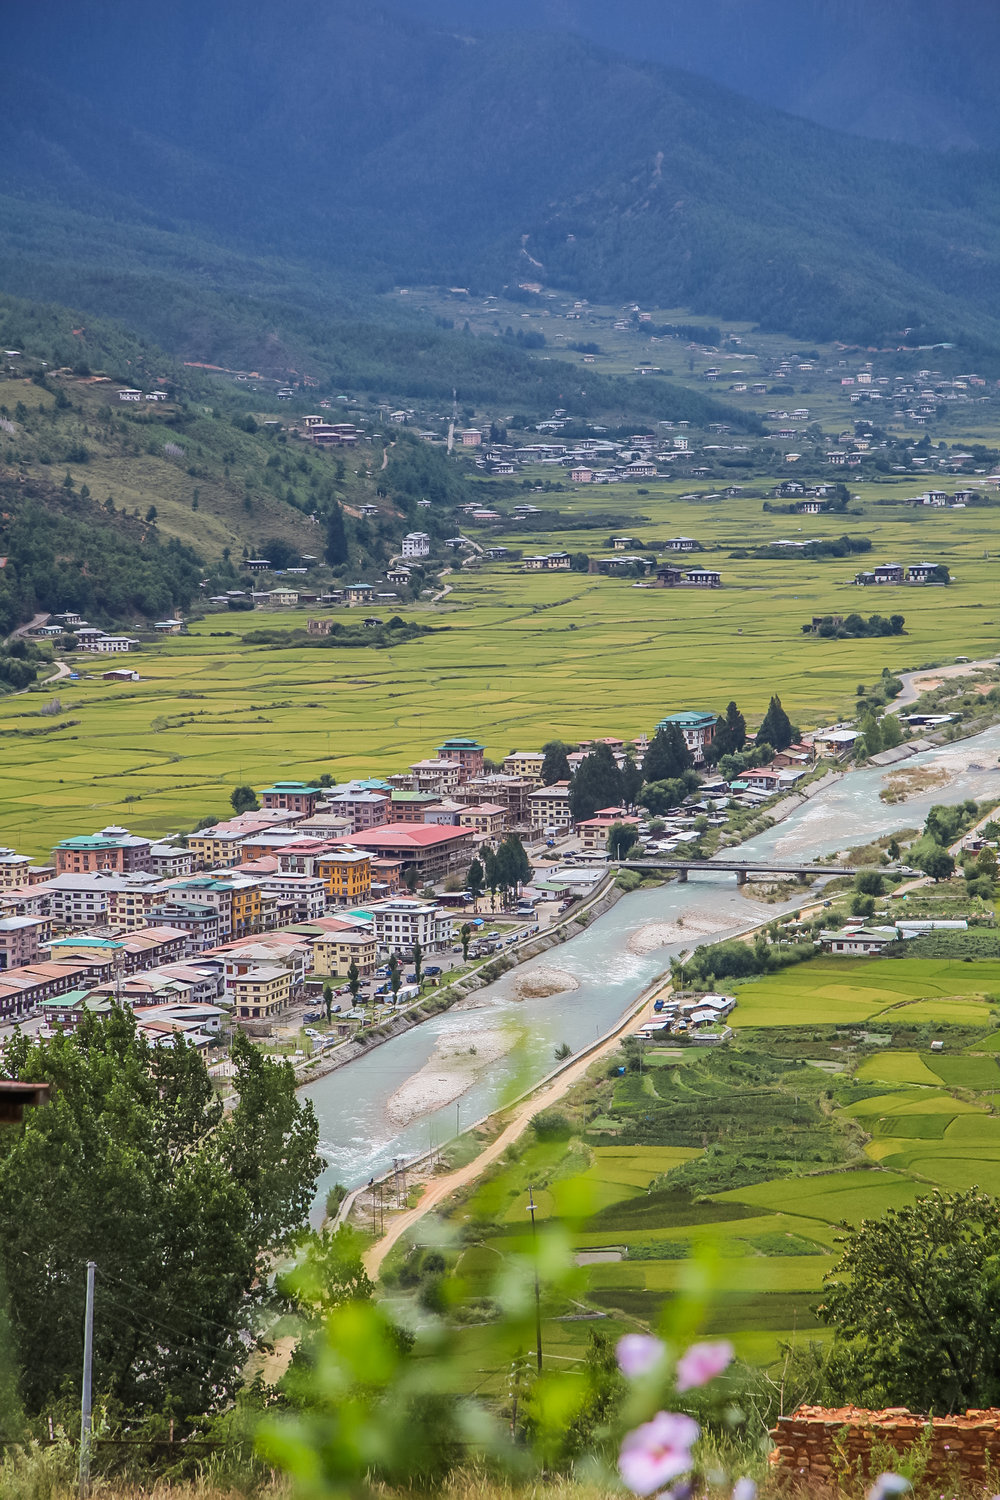 The town of Paro in the valley.